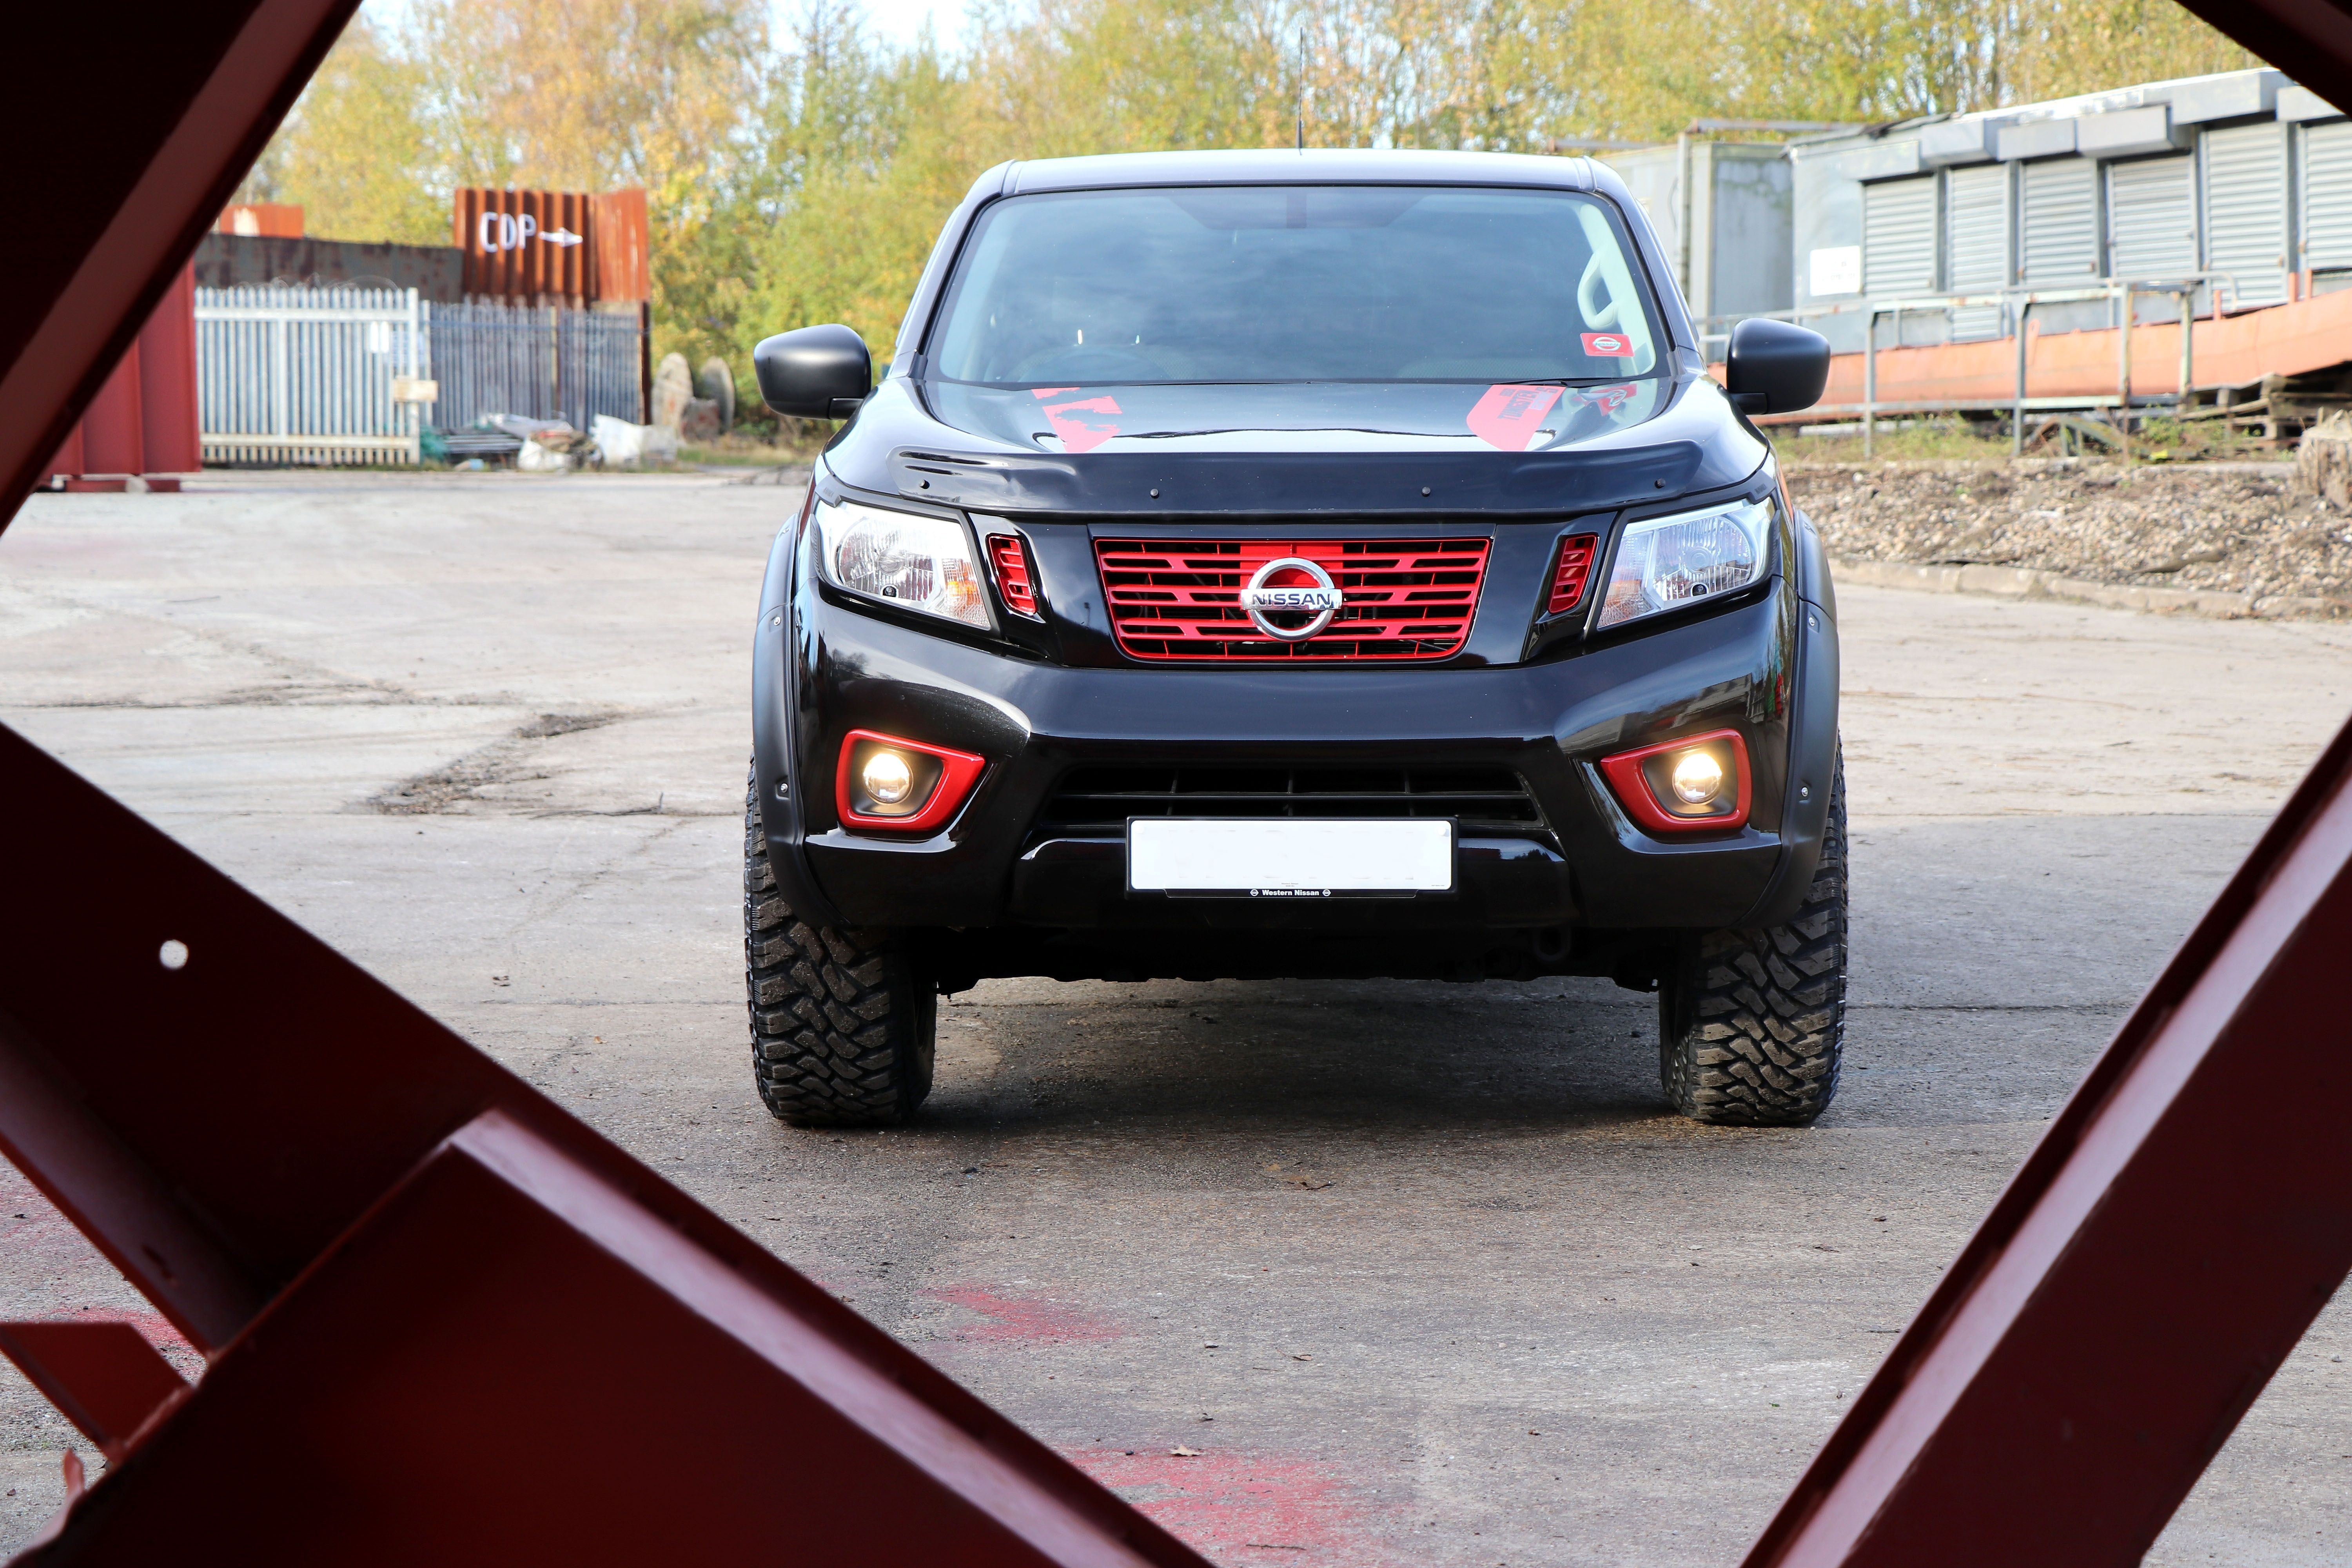 Introducing our SEEKER Tungsten Carbide Special Edition! A conversion for the Nissan Navara.